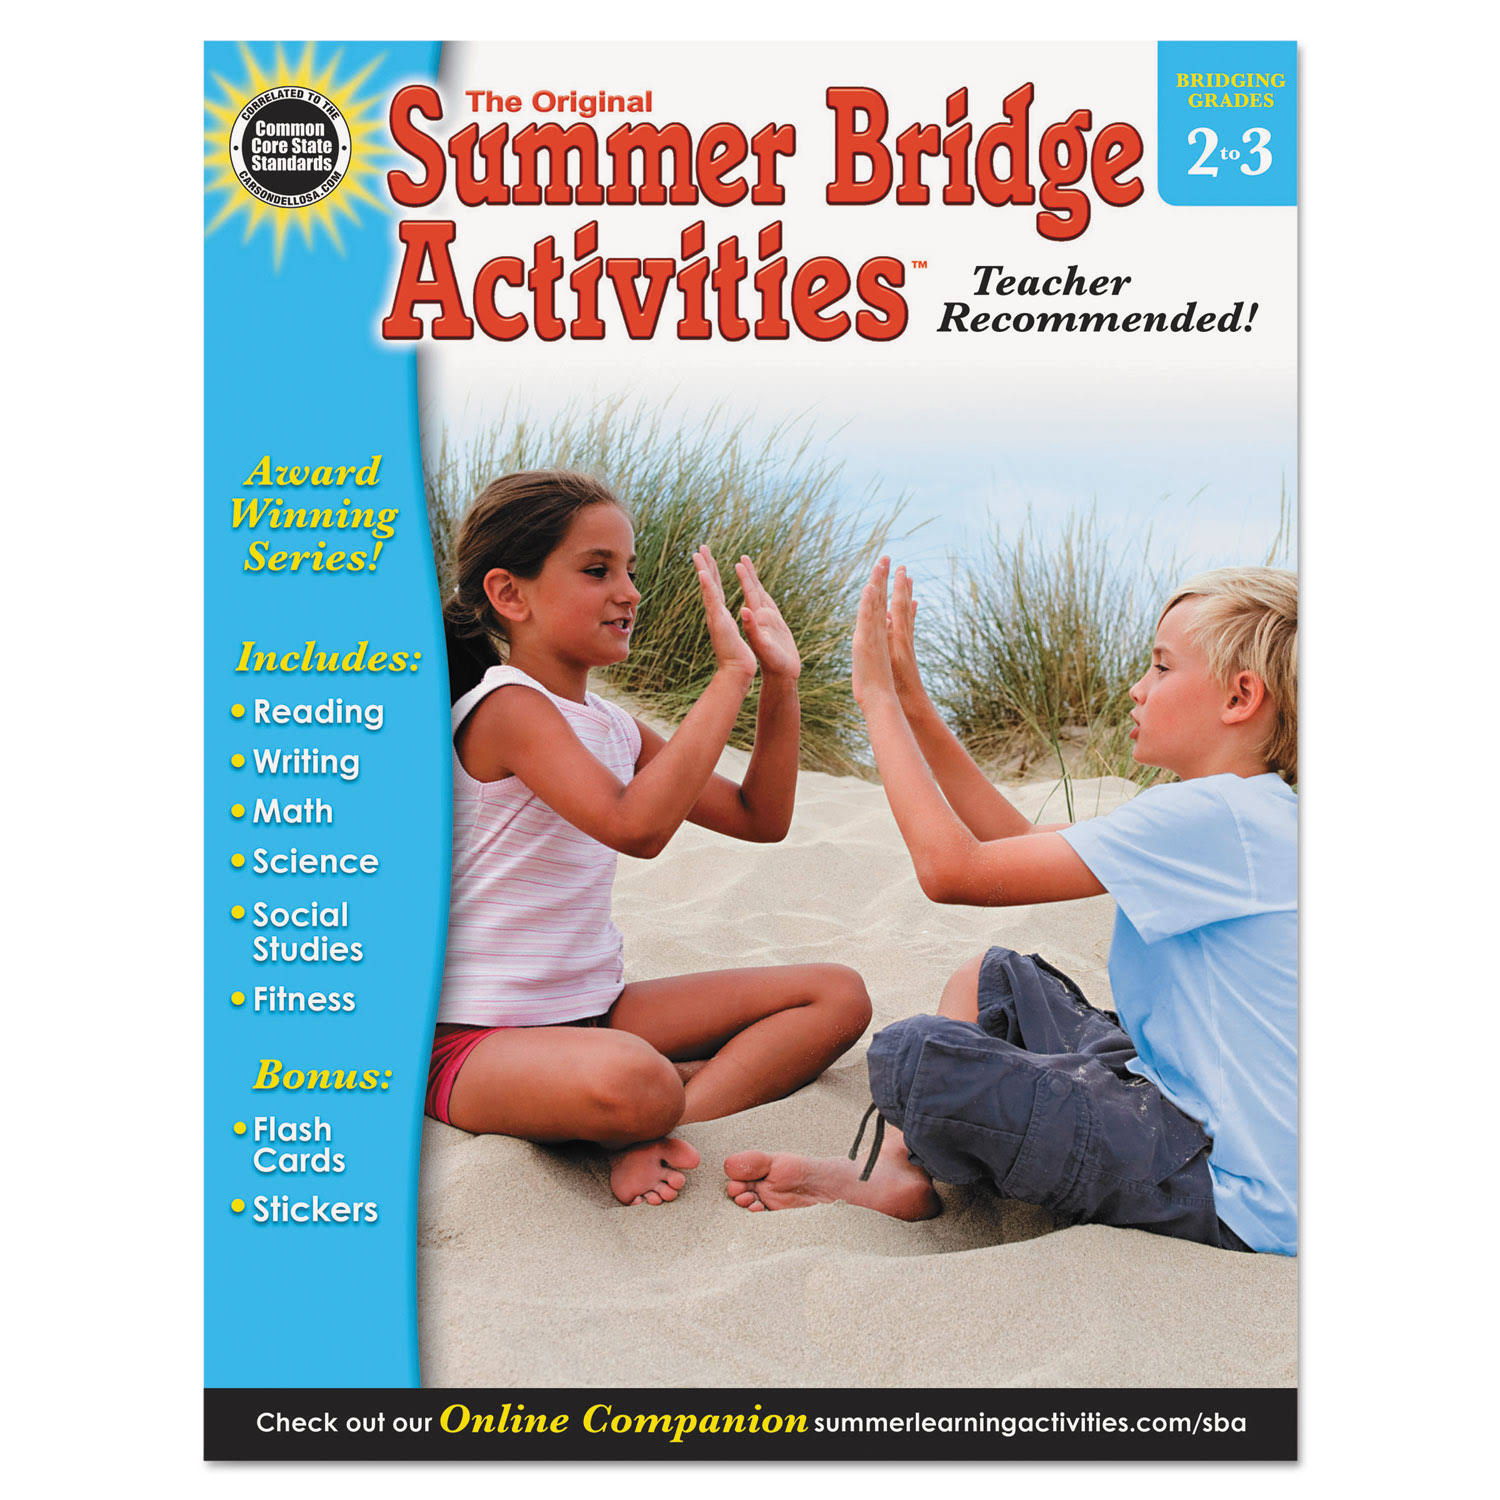 The Original Summer Bridge Activities: Bridging Grades 2-3 - Carson-Dellosa Publishing